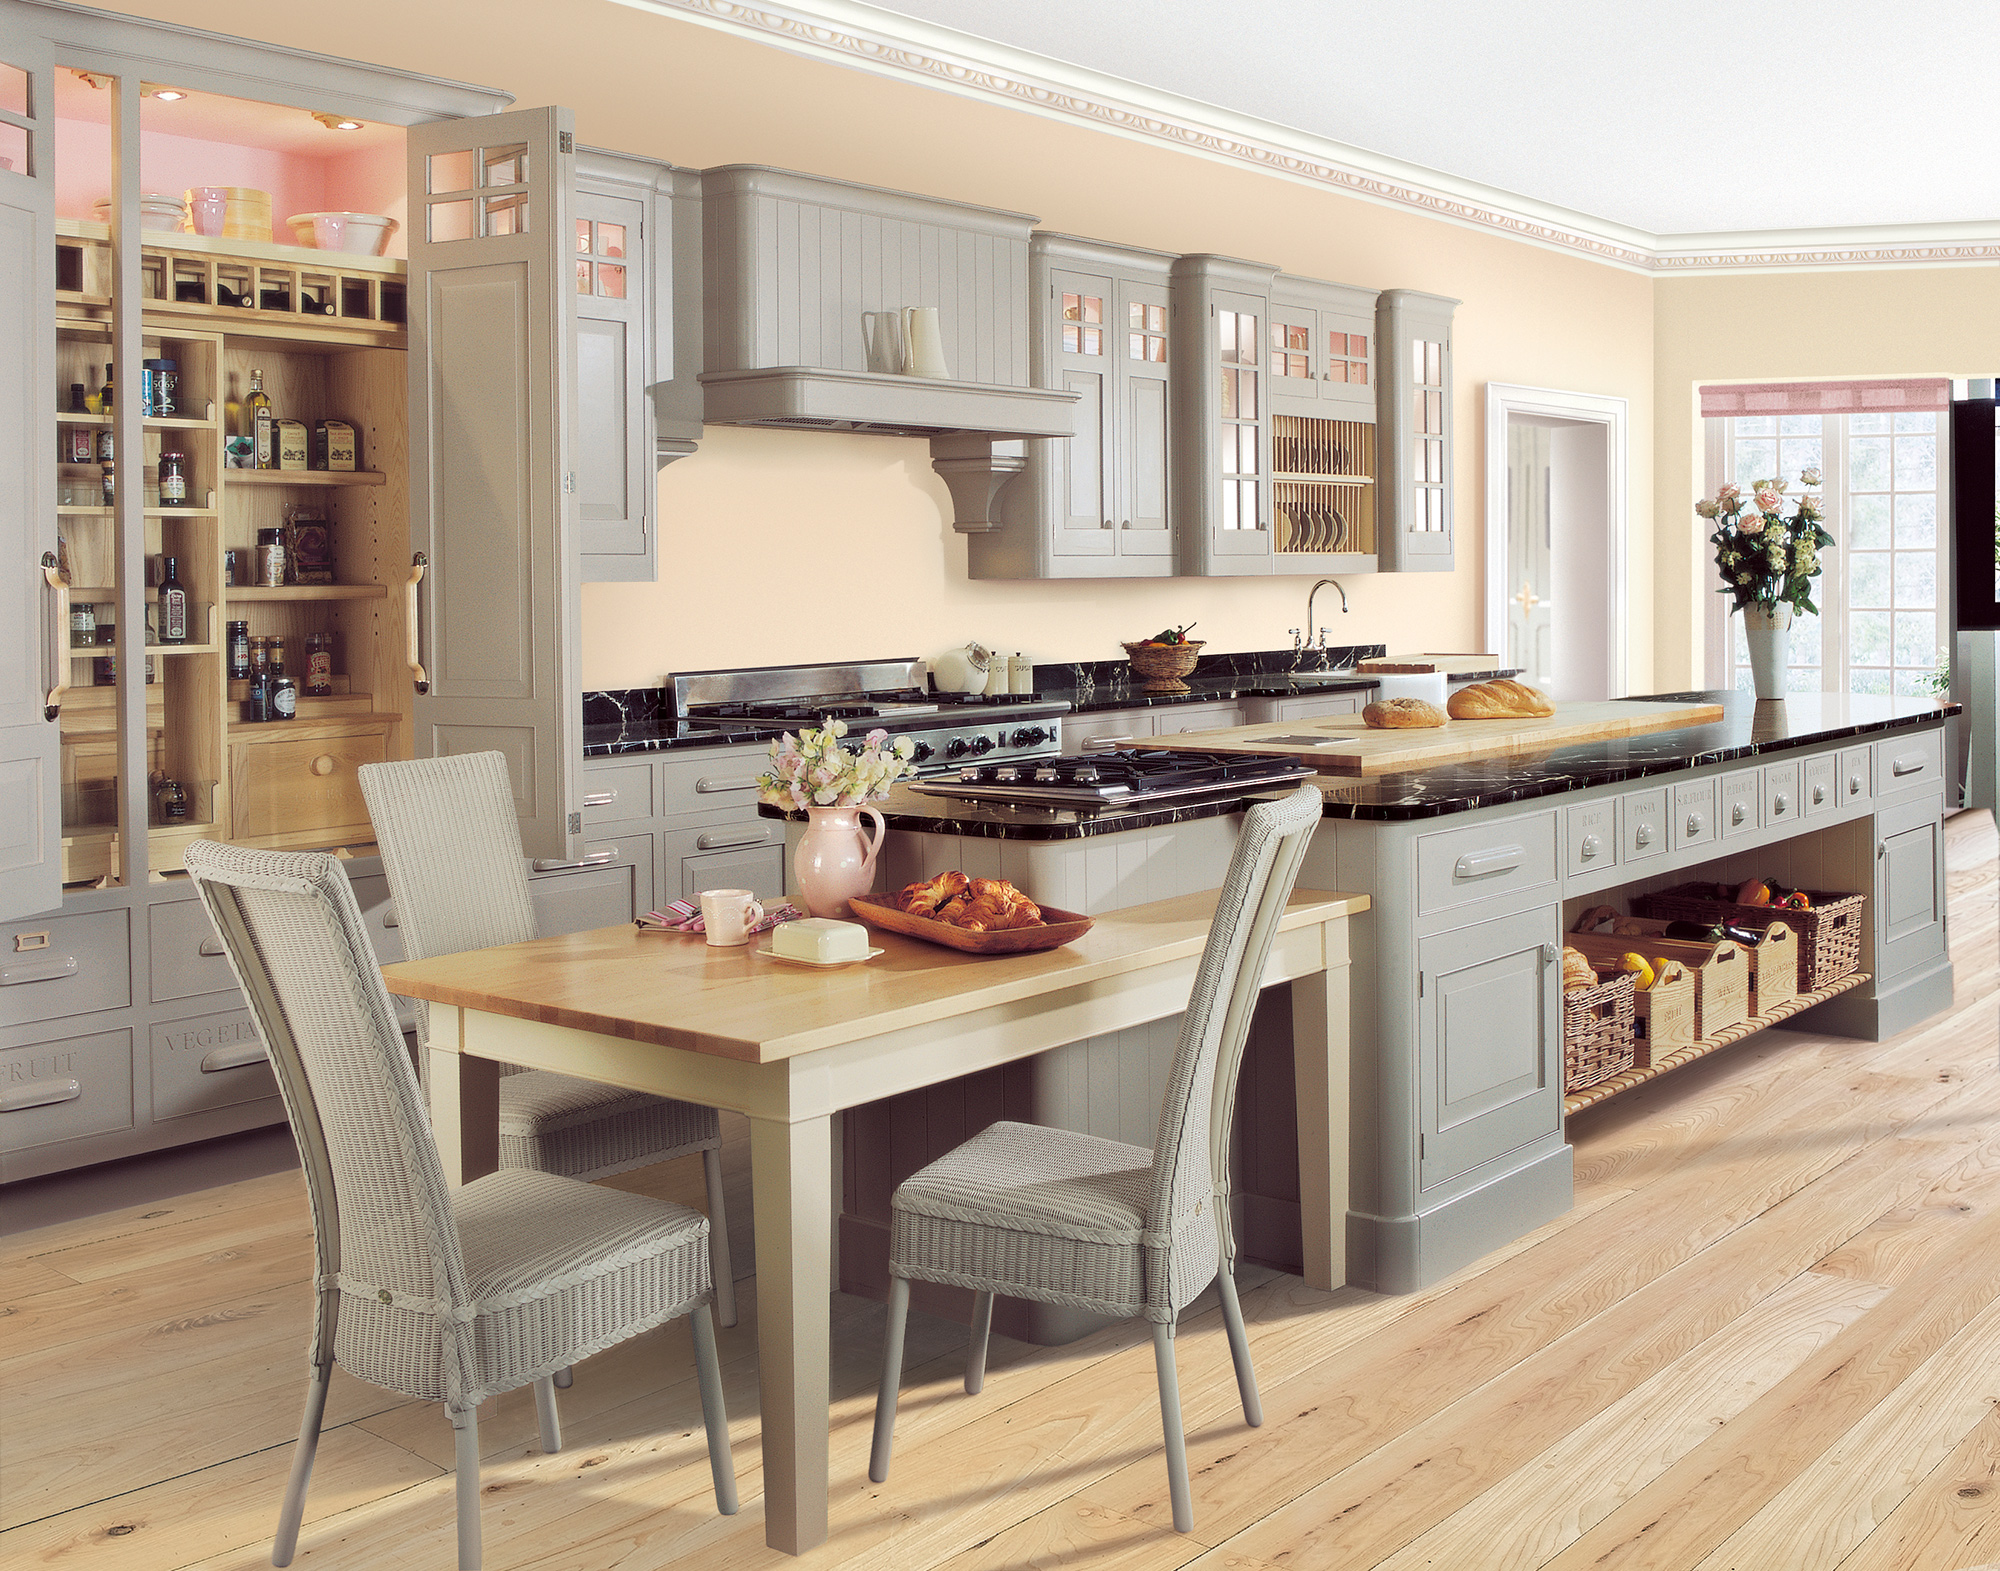 Mark wilkinson furniture collection english classic kitchen 16